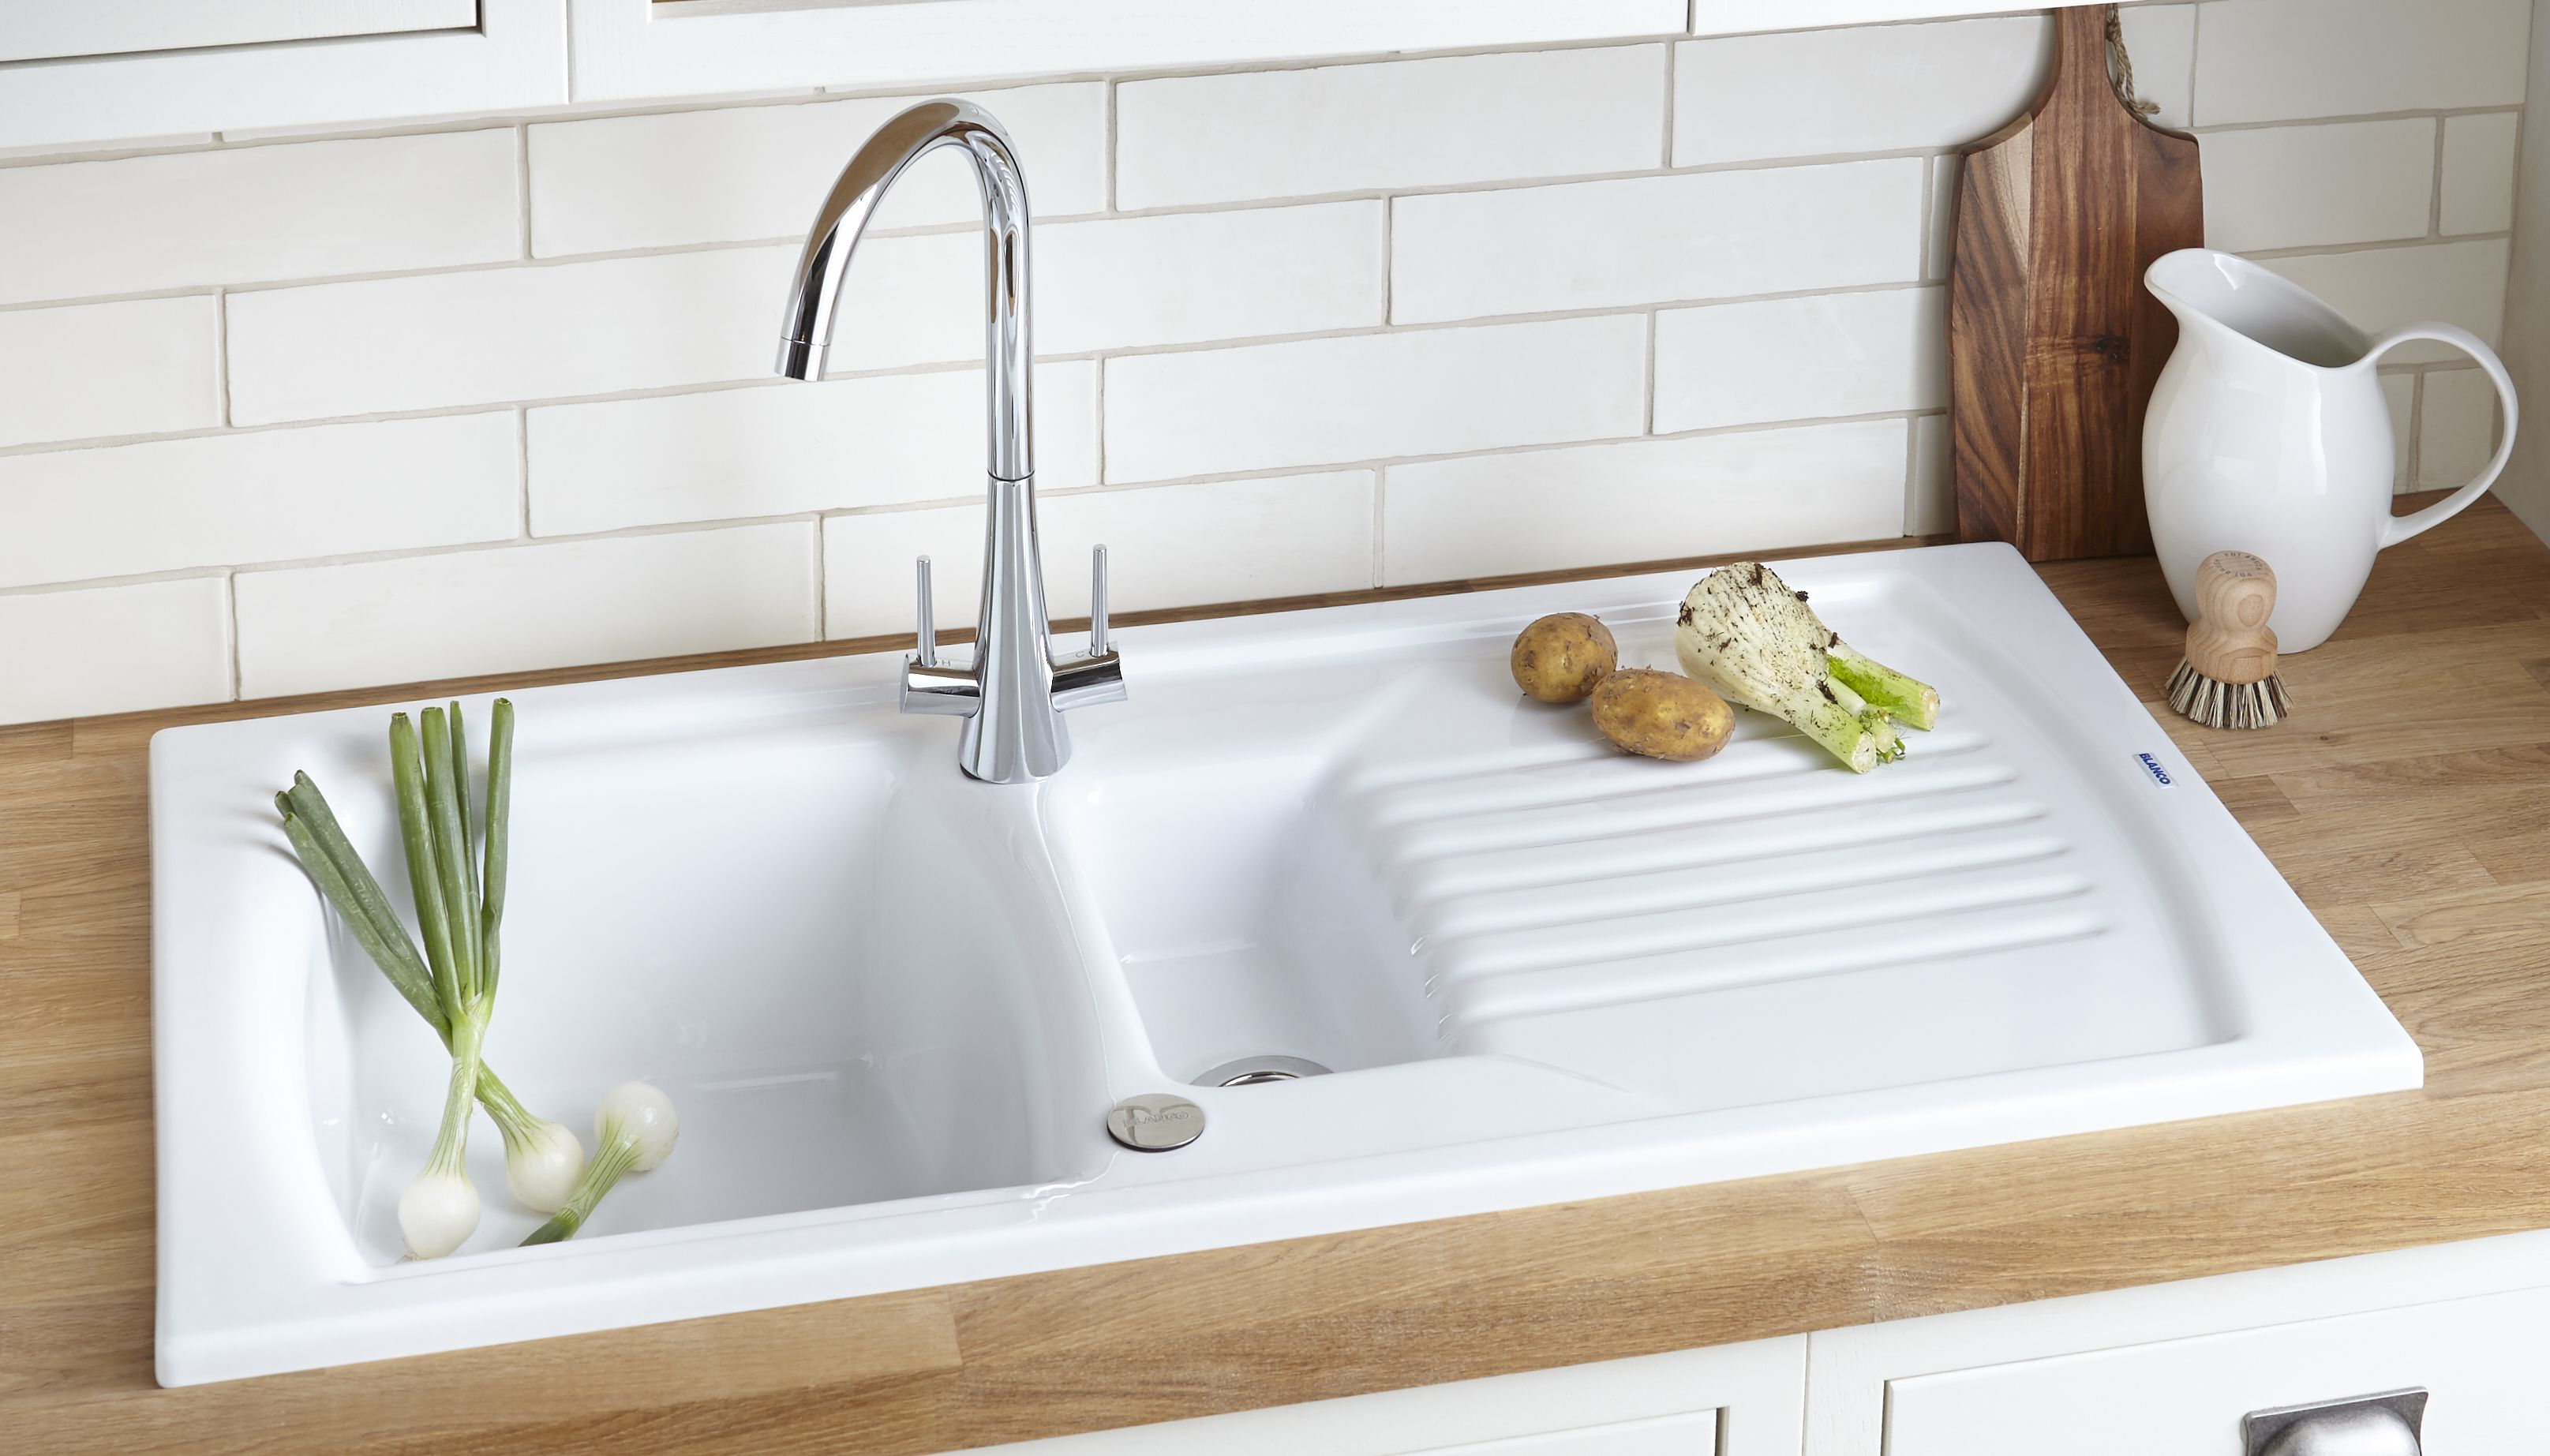 Kitchen sink buying guide help ideas diy at b q for B q bathroom accessories